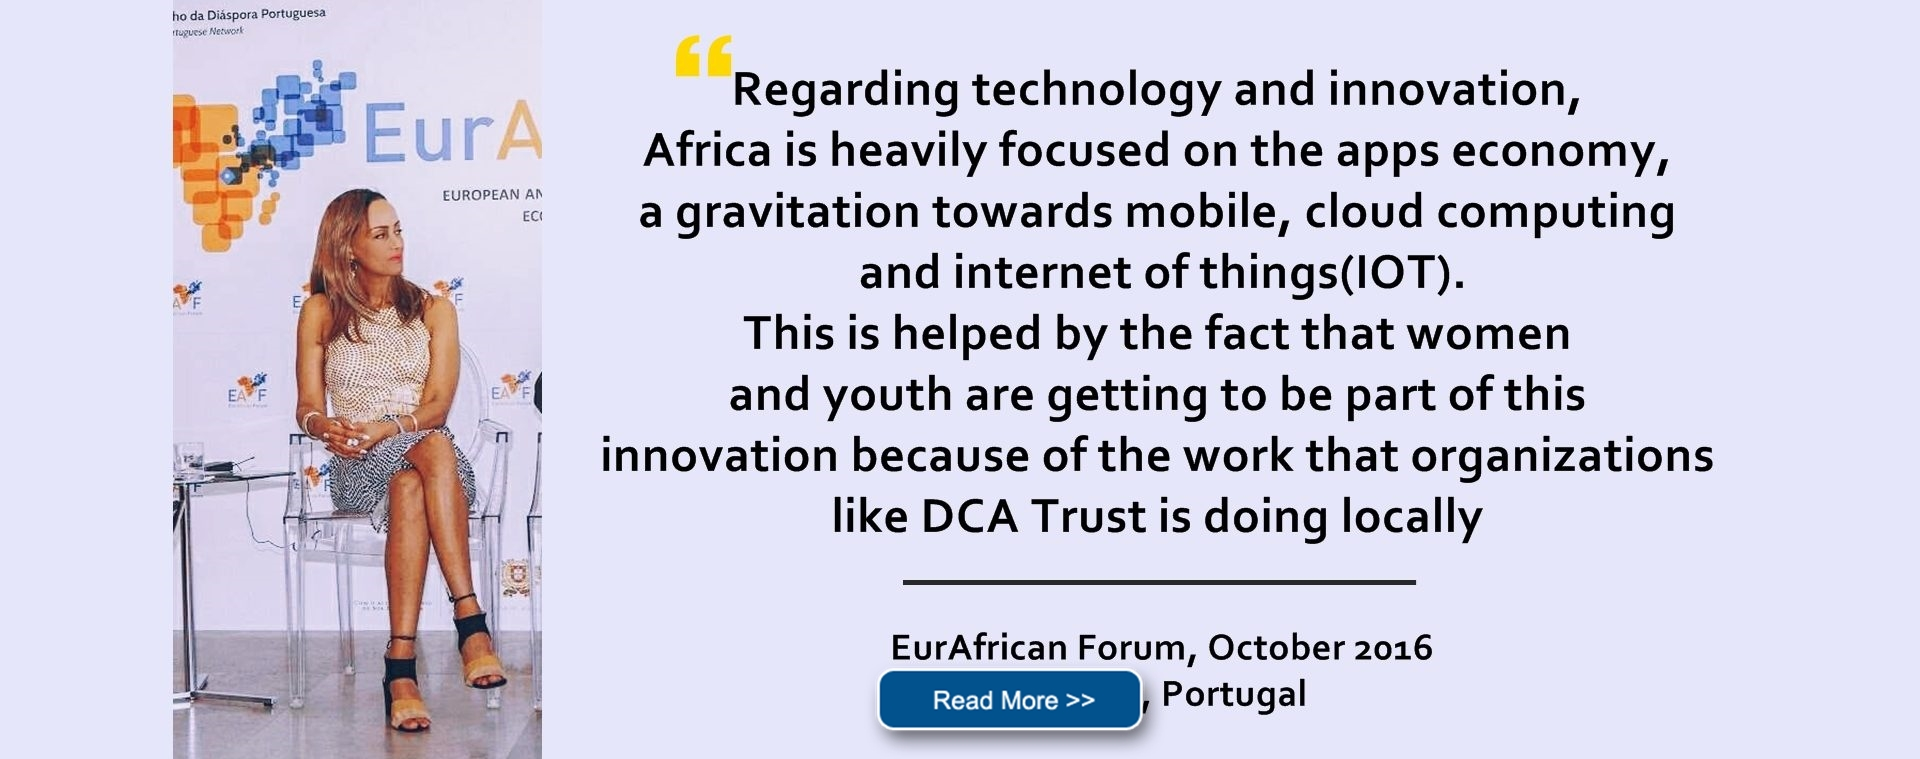 Key Issues and Challenges on Africa's Innovation ad IT industry at the EurAfrican Forum, Cascais, Portugal